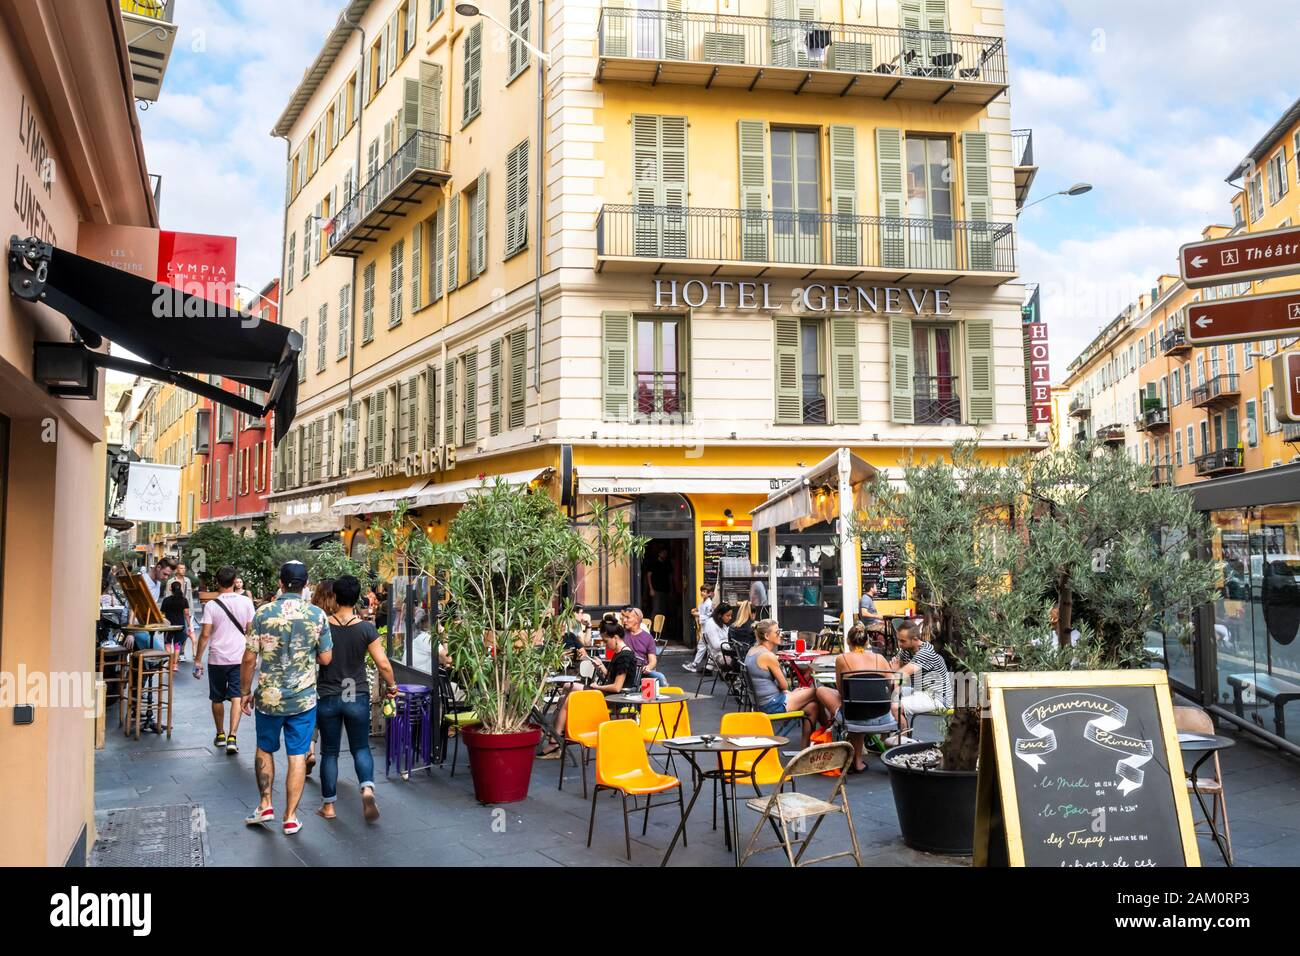 Tourists pass by the hotels, cafes and shops in the Old Town area of Nice, France, on the French Riviera. Stock Photo